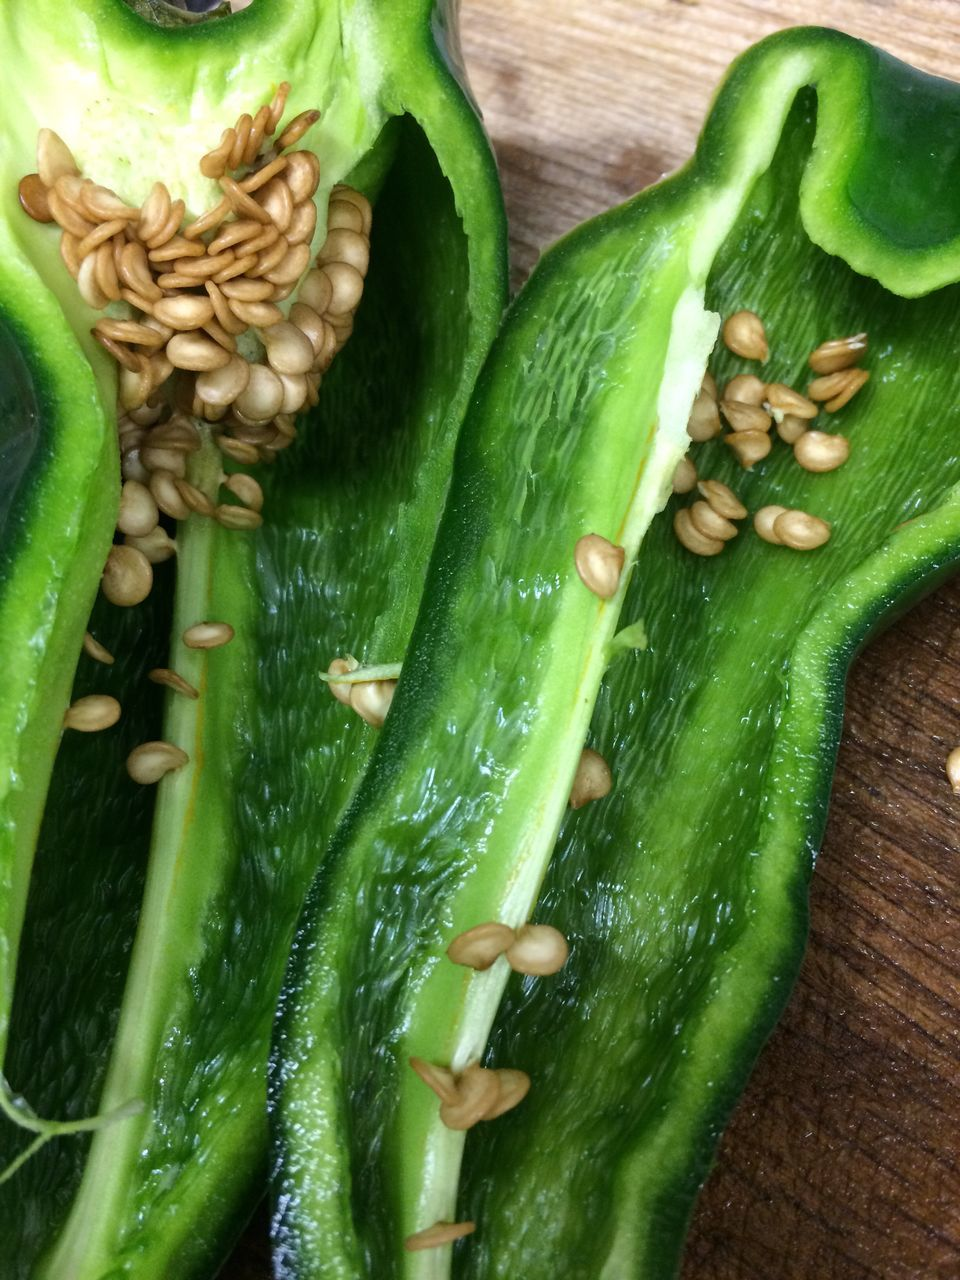 green color, vegetable, food and drink, food, freshness, healthy eating, green chili pepper, no people, raw food, indoors, close-up, day